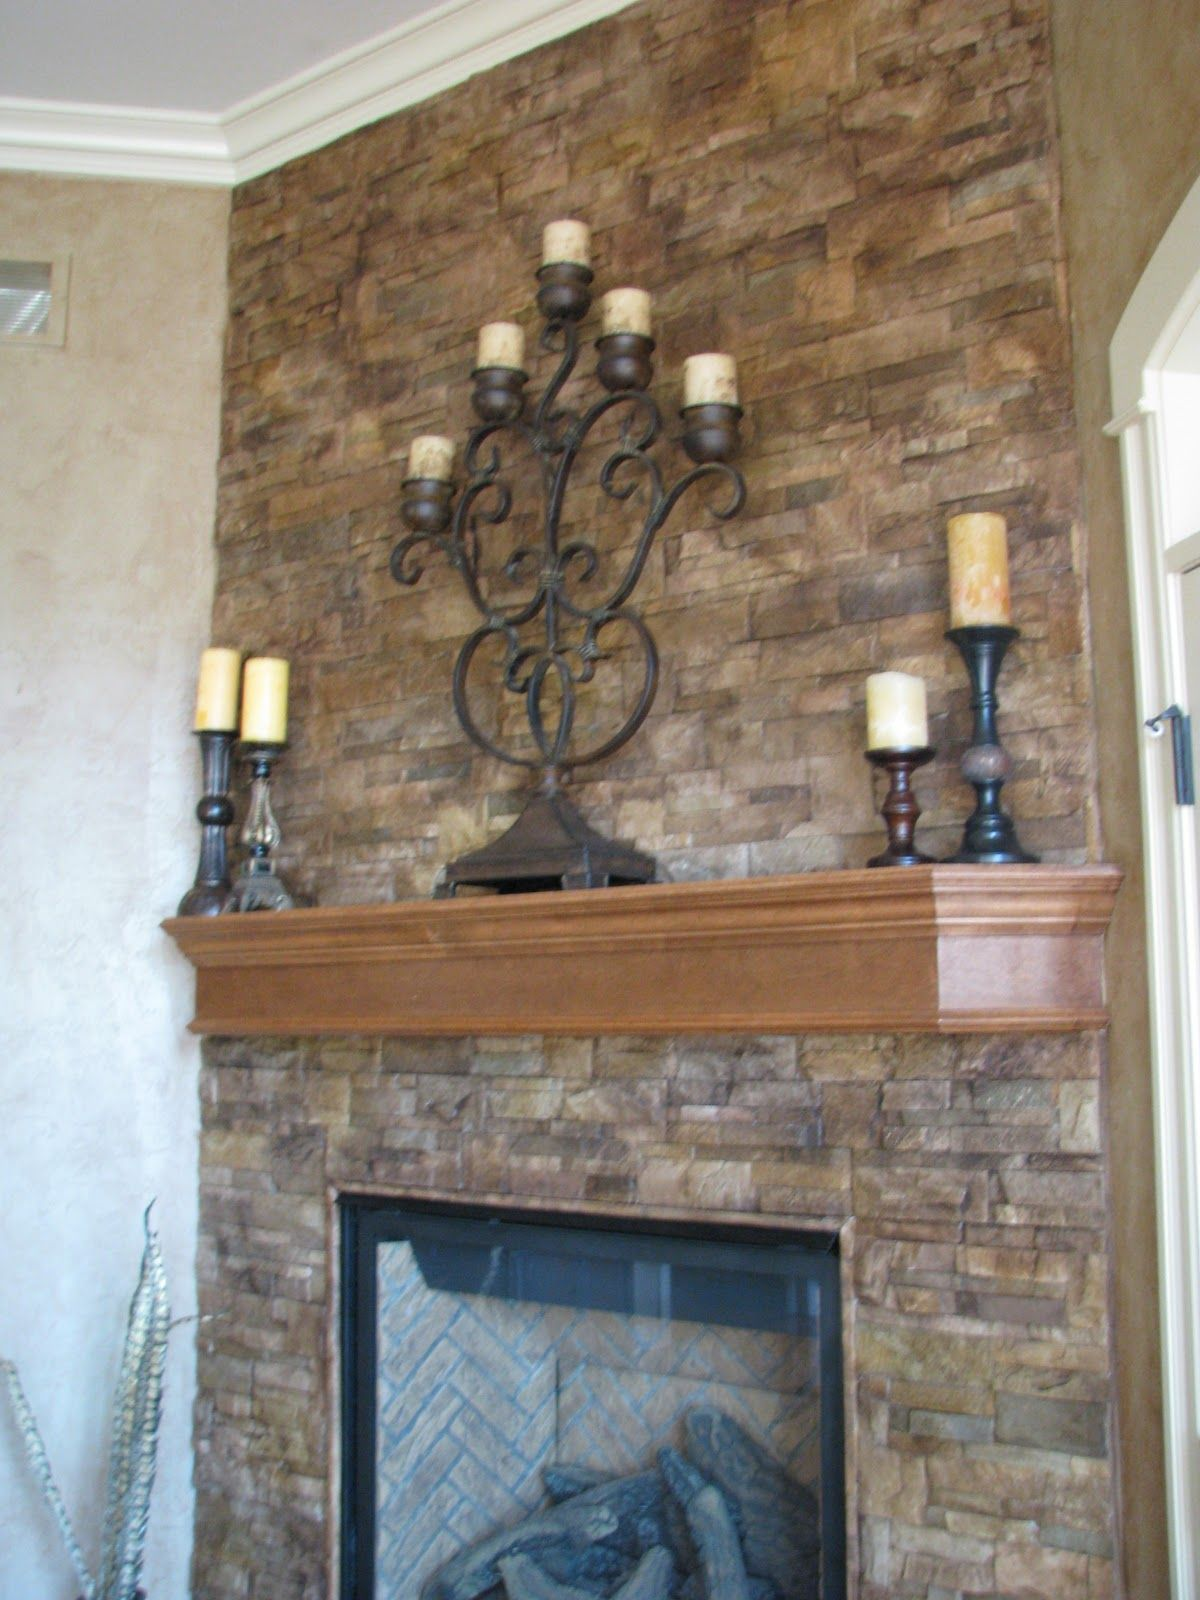 Gut Hervorragend Roman Beige Ledger Stone Accent Wall And Fireplace Surround.  Brown Travertine Ledger Stone, Stone Steinplatte Kamin Verjungungskur  Lieblich ...